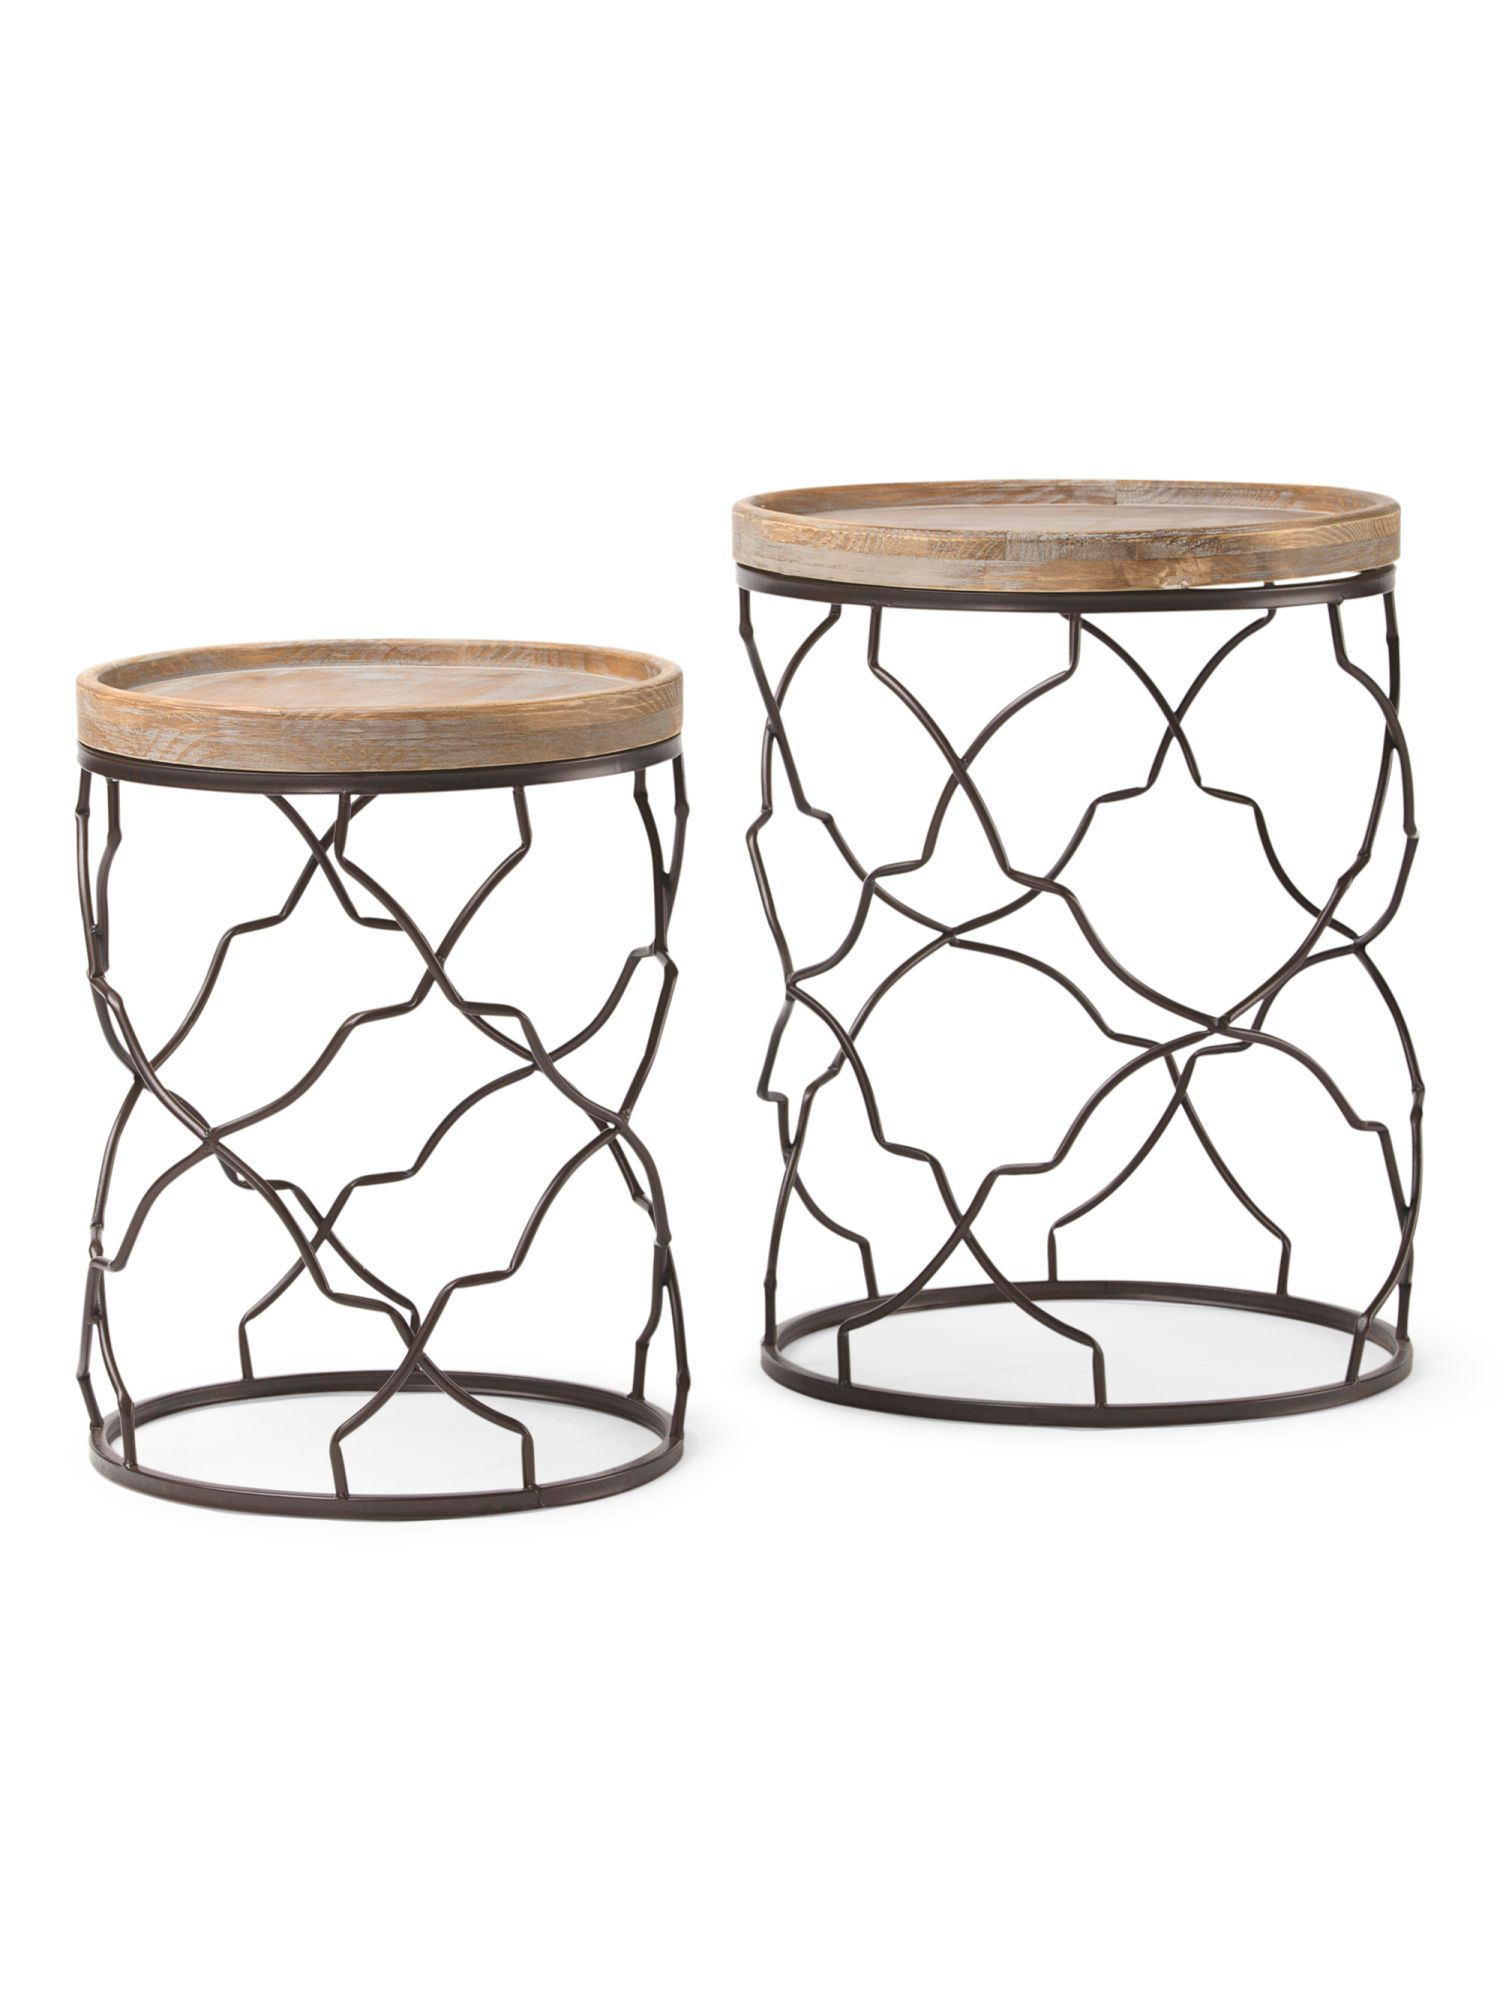 Set of 2 decorative accent tables accent furniture tjxx set of 2 decorative accent tables accent furniture tjxx geotapseo Choice Image